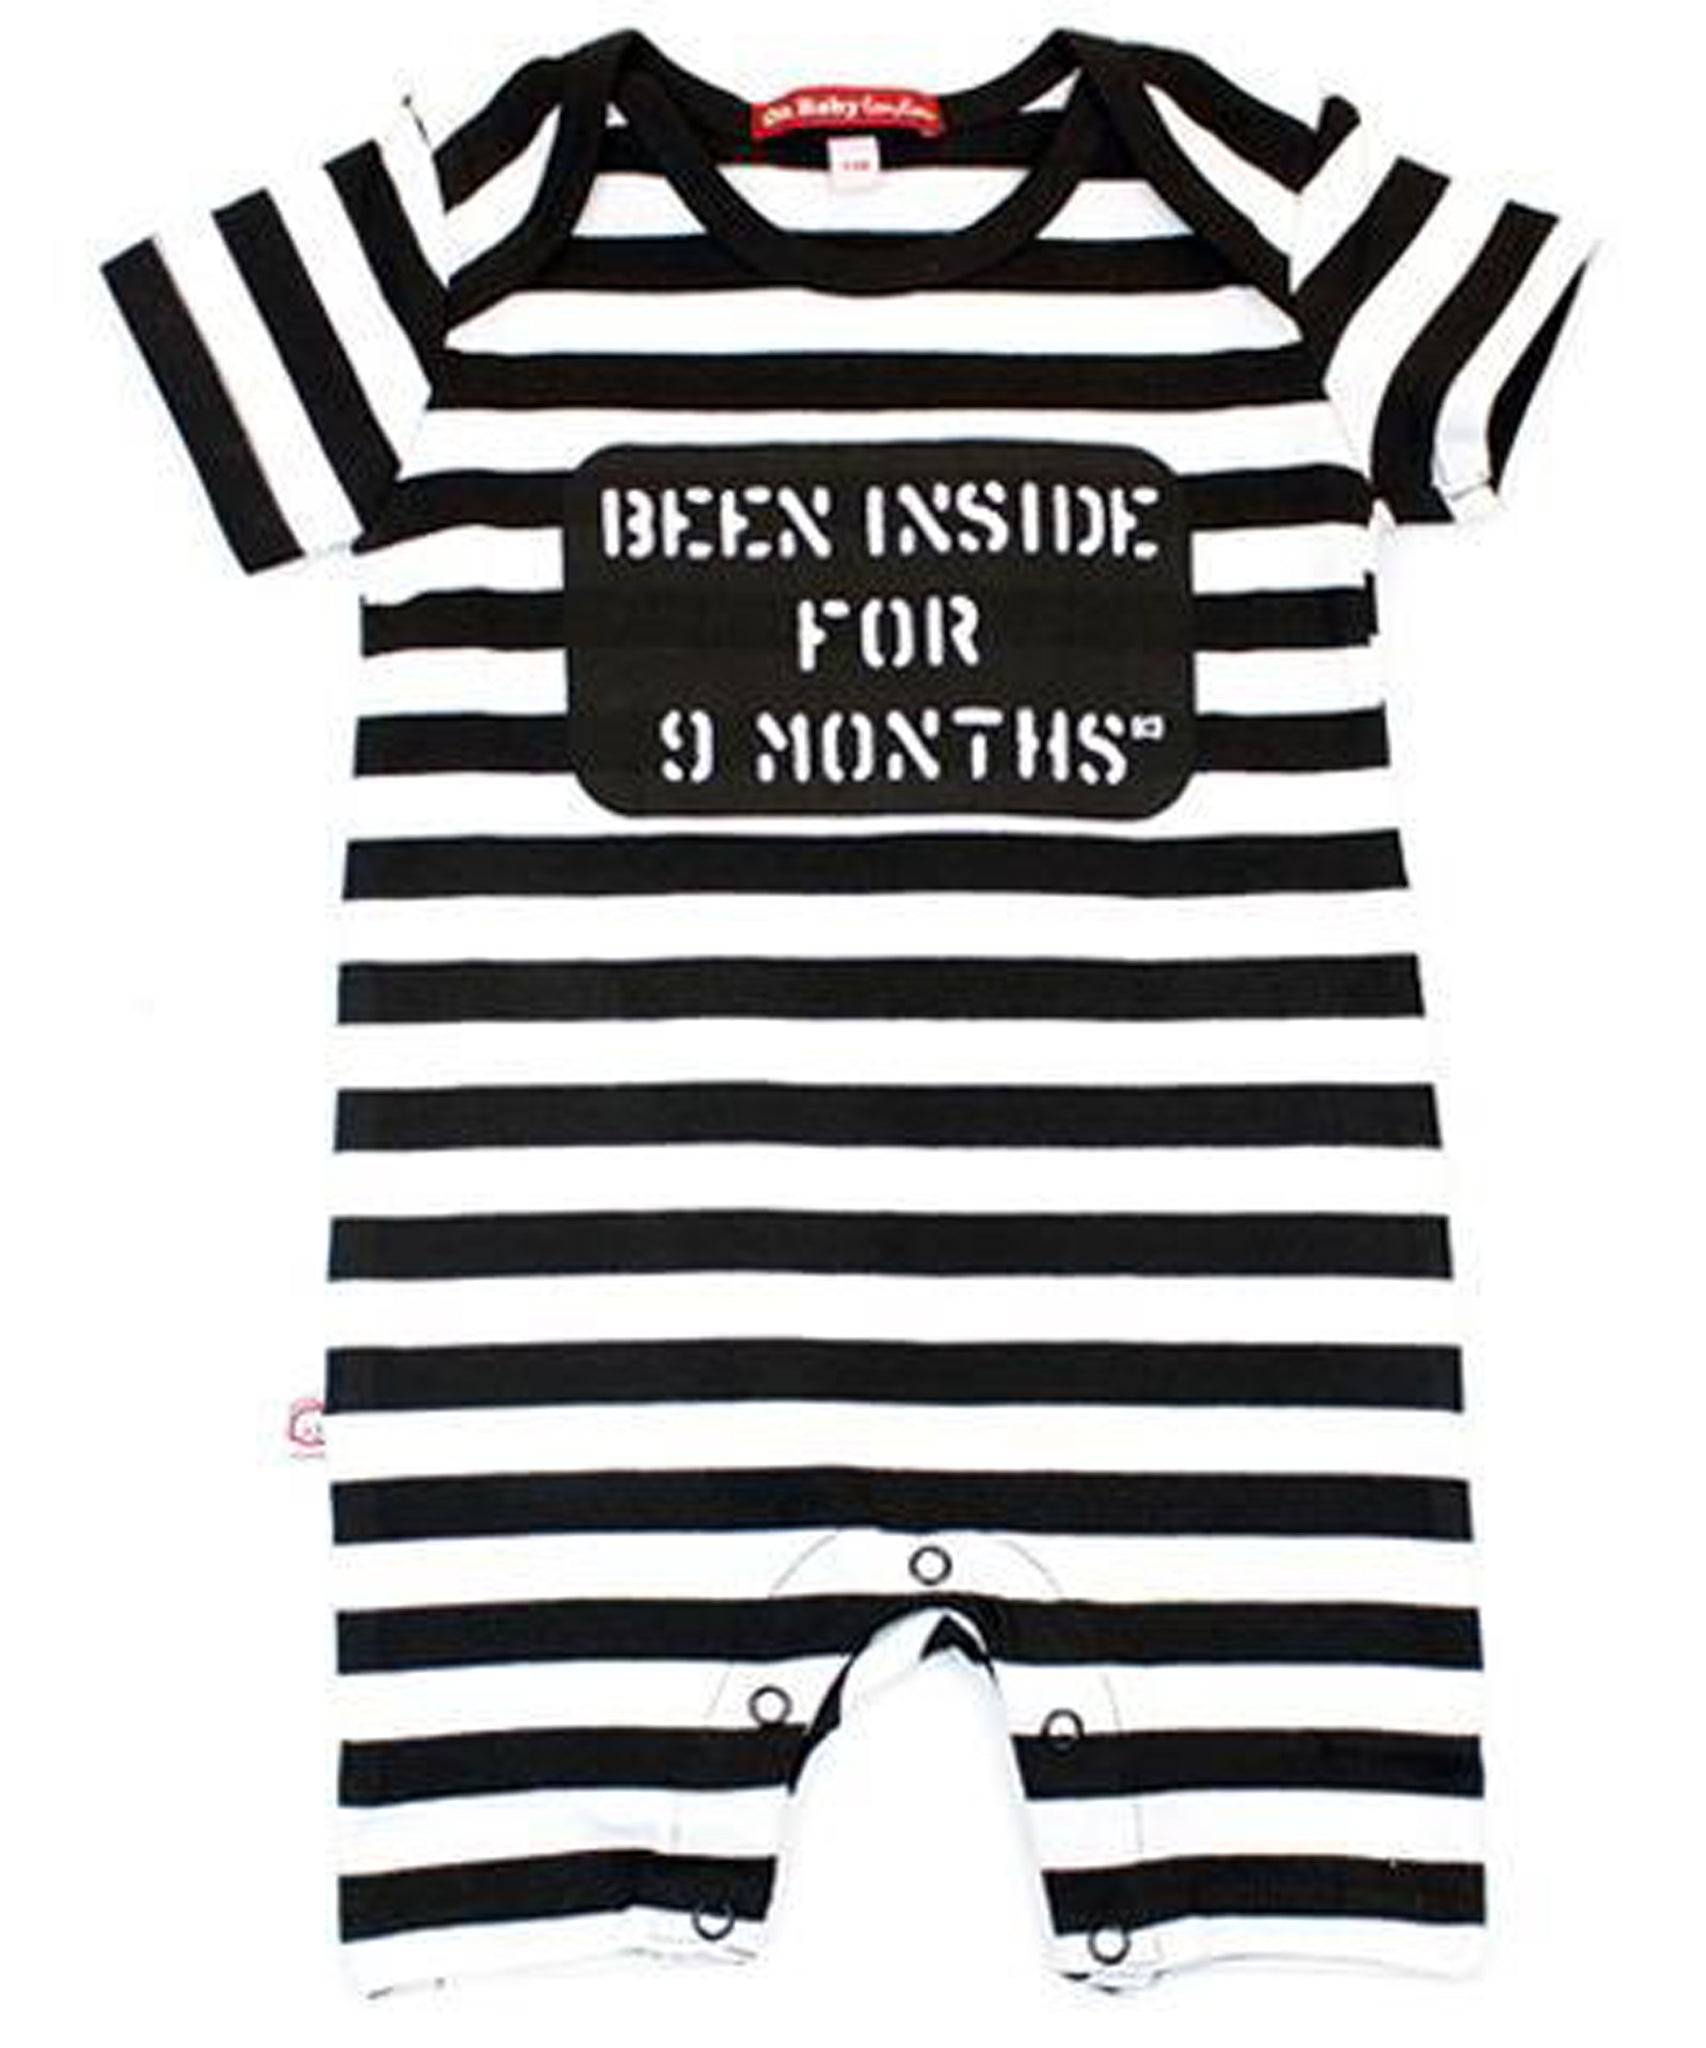 ORGANIC BEEN INSIDE FOR 9 MONTHS SHORT SLEEVE PLAYSUIT